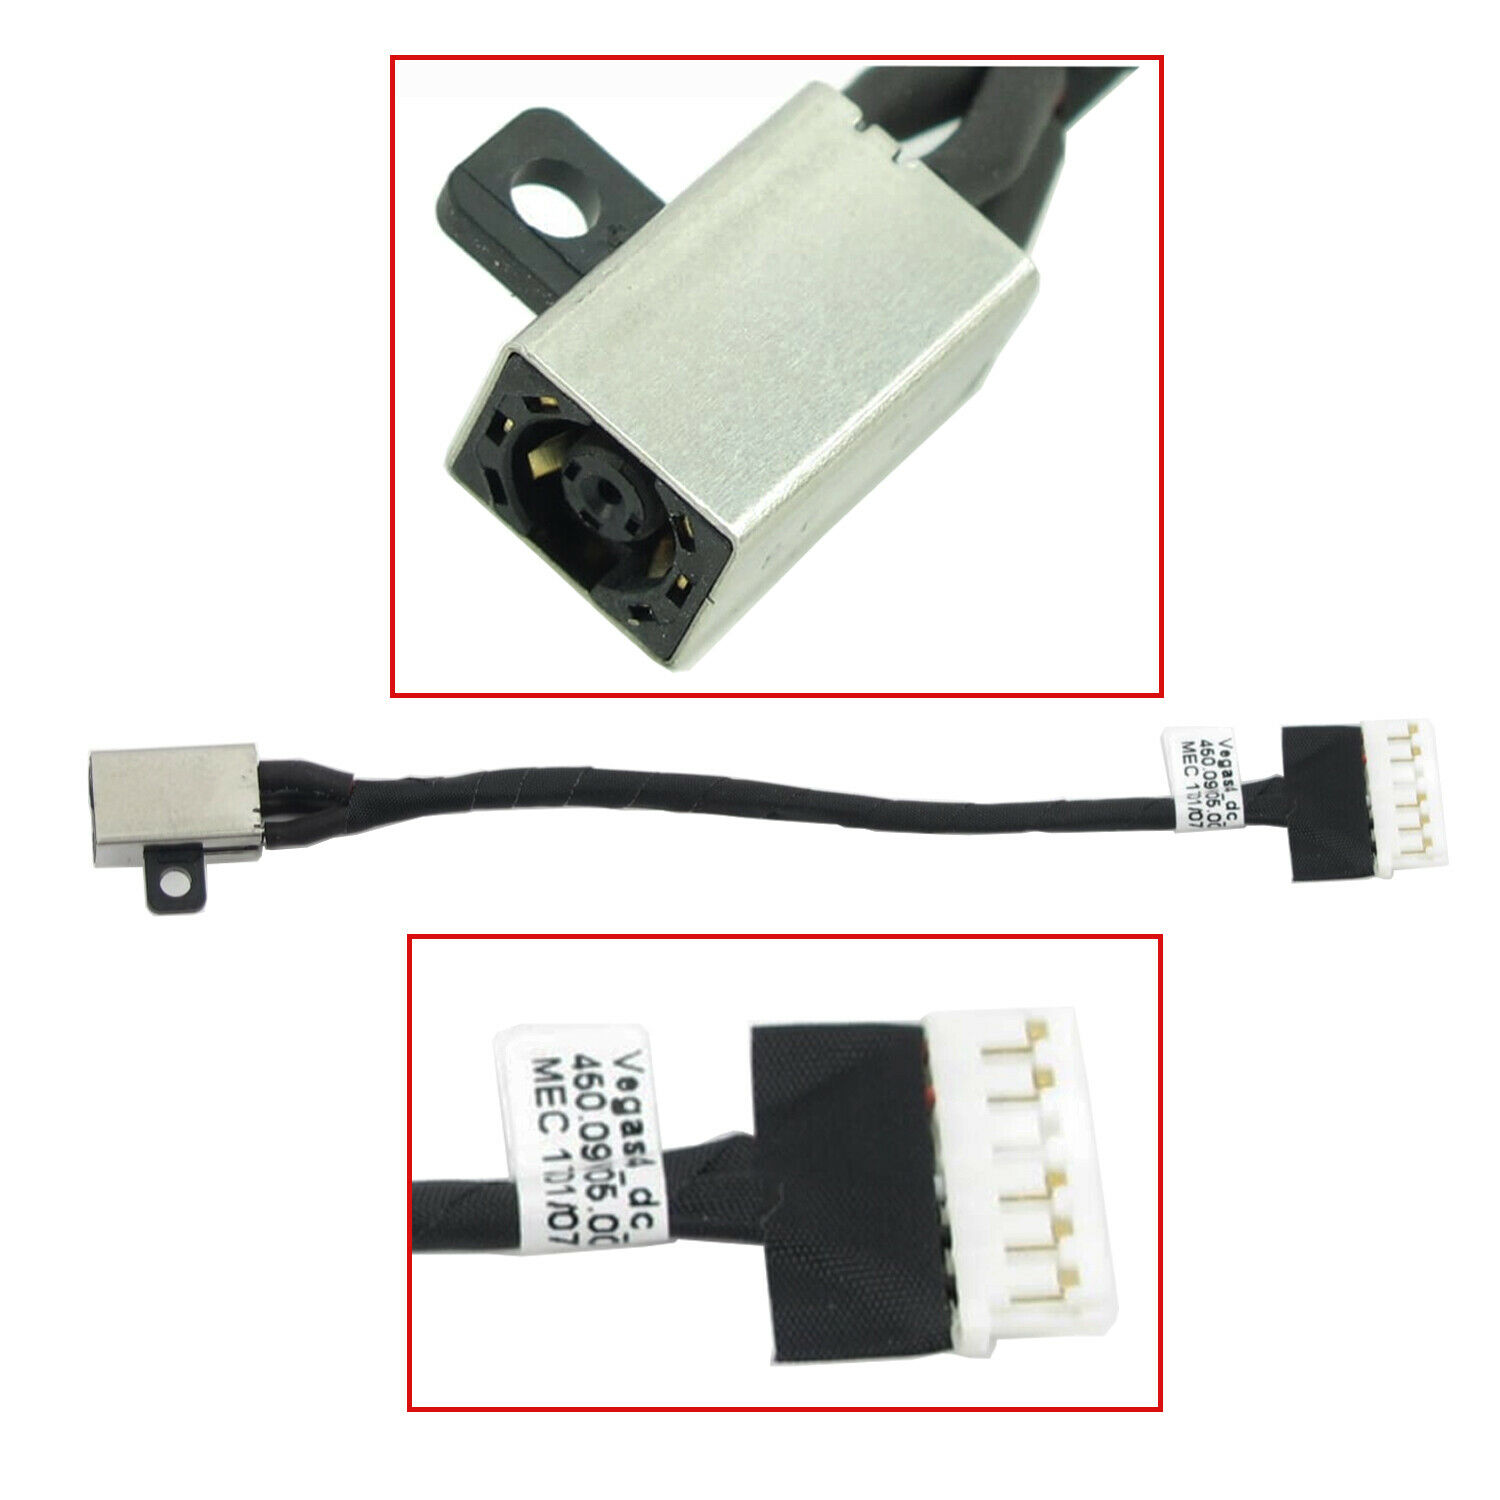 New DC POWER JACK Cable Harness For Dell Inspiron 15 3567 FWGMM 450.09W05.0001 0FWGMM